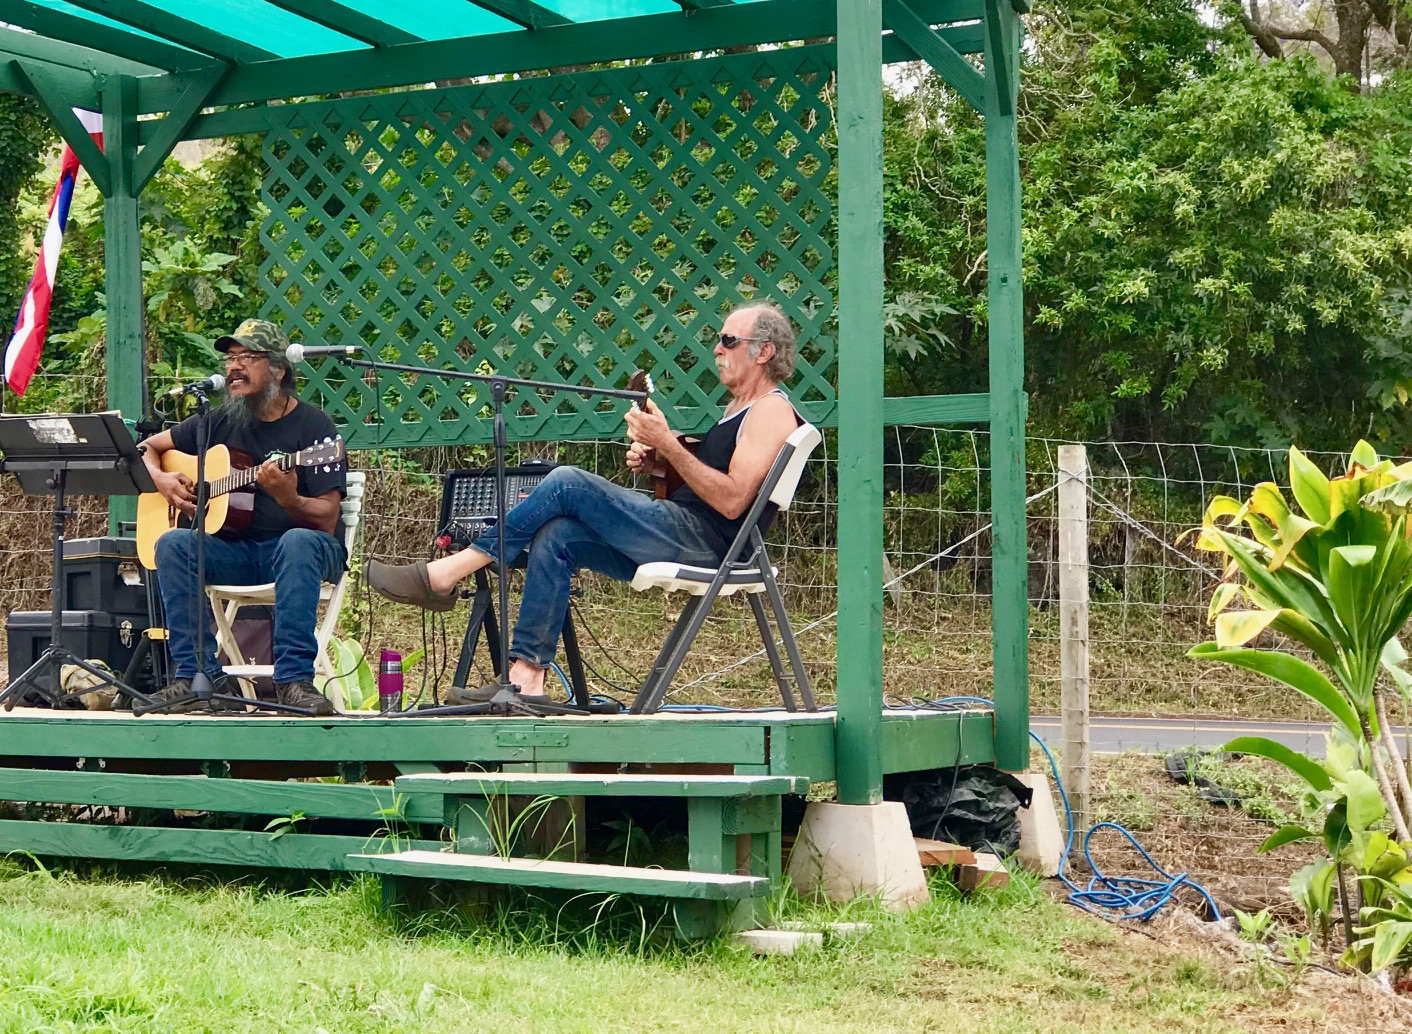 Music and Diverse Goods at Kēōkea Farmers Market